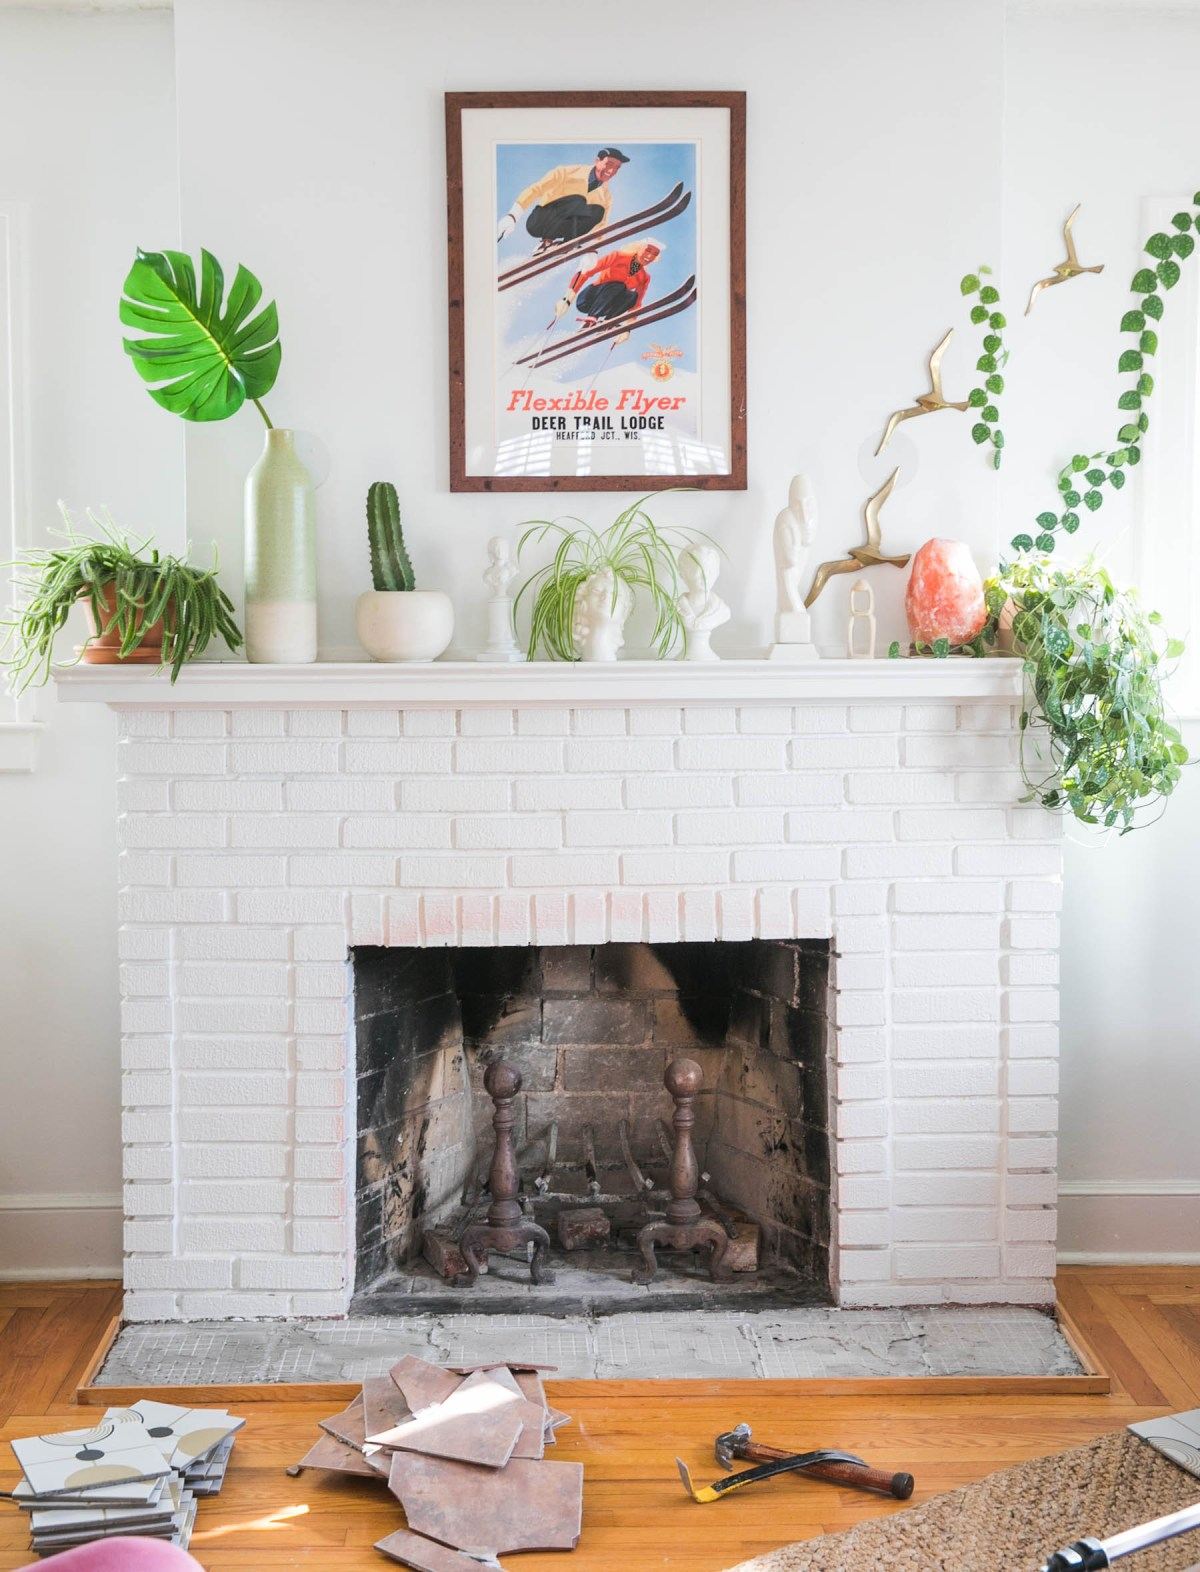 How to Tile a Fireplace Hearth | Yes You Can! | Fireplace Makeover Ideas on a Budget | JessicaBrigham.com